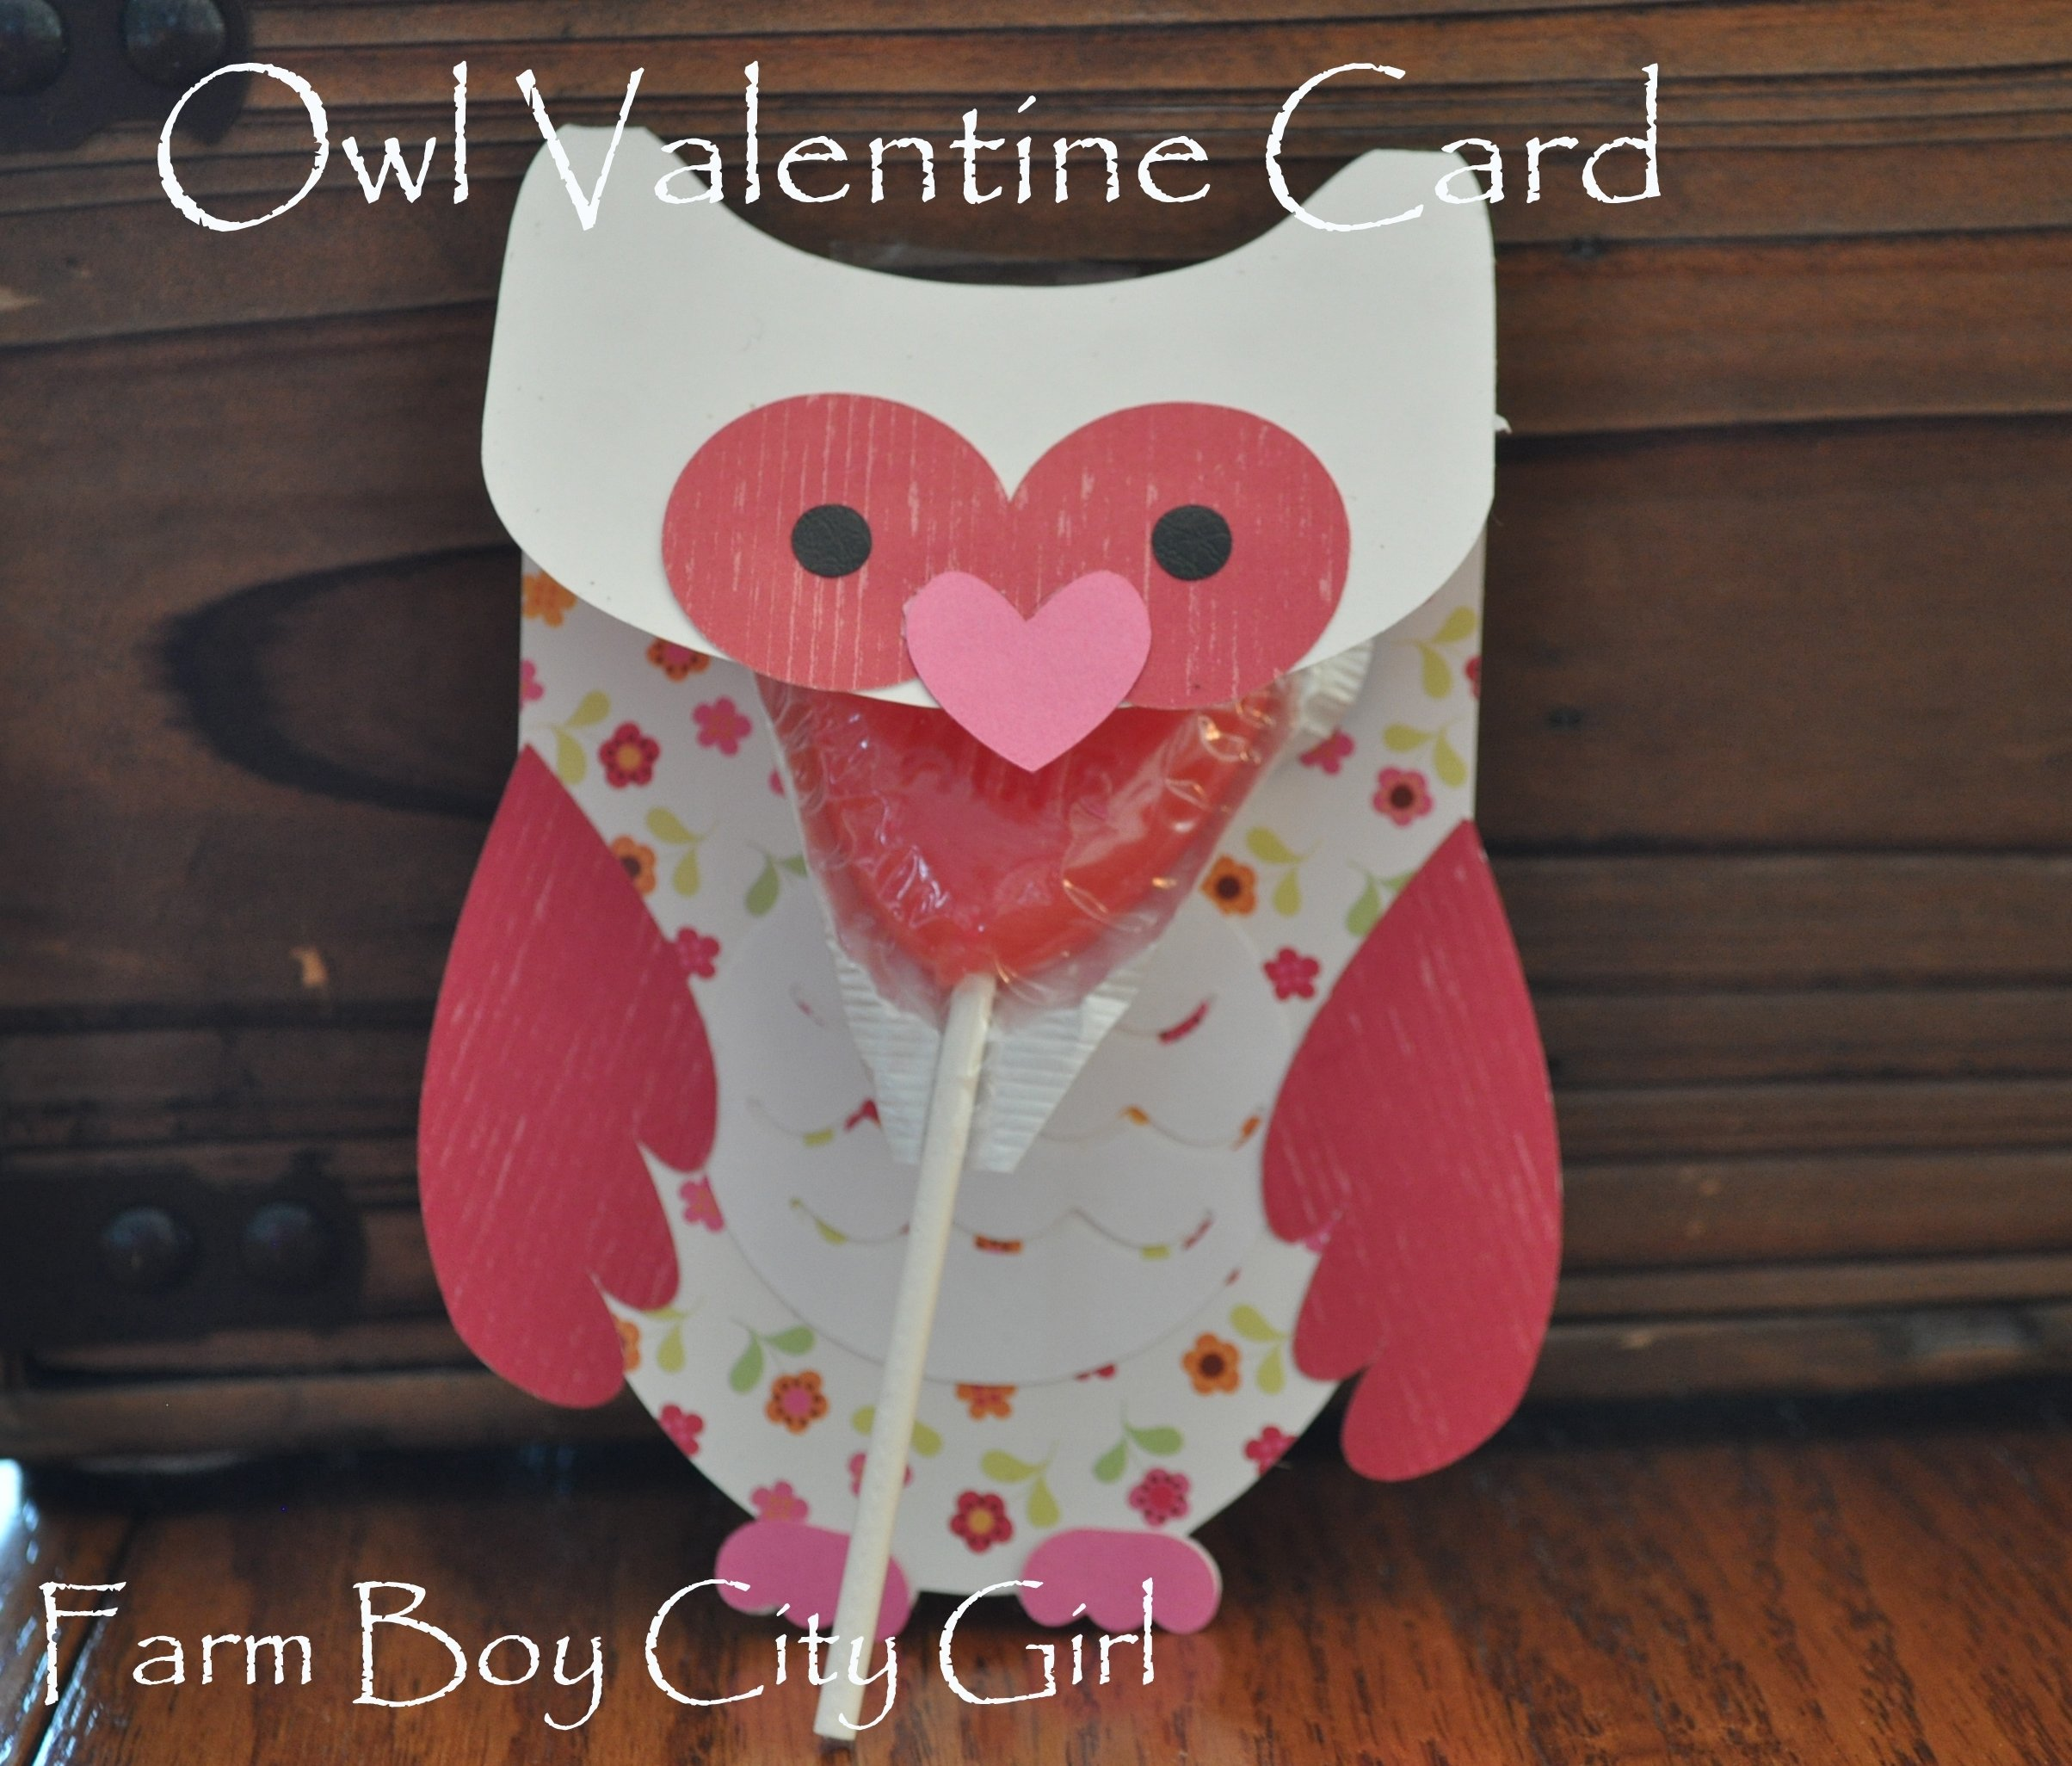 10 Most Popular Ideas For Valentines Day Boxes For School school valentine box ideas